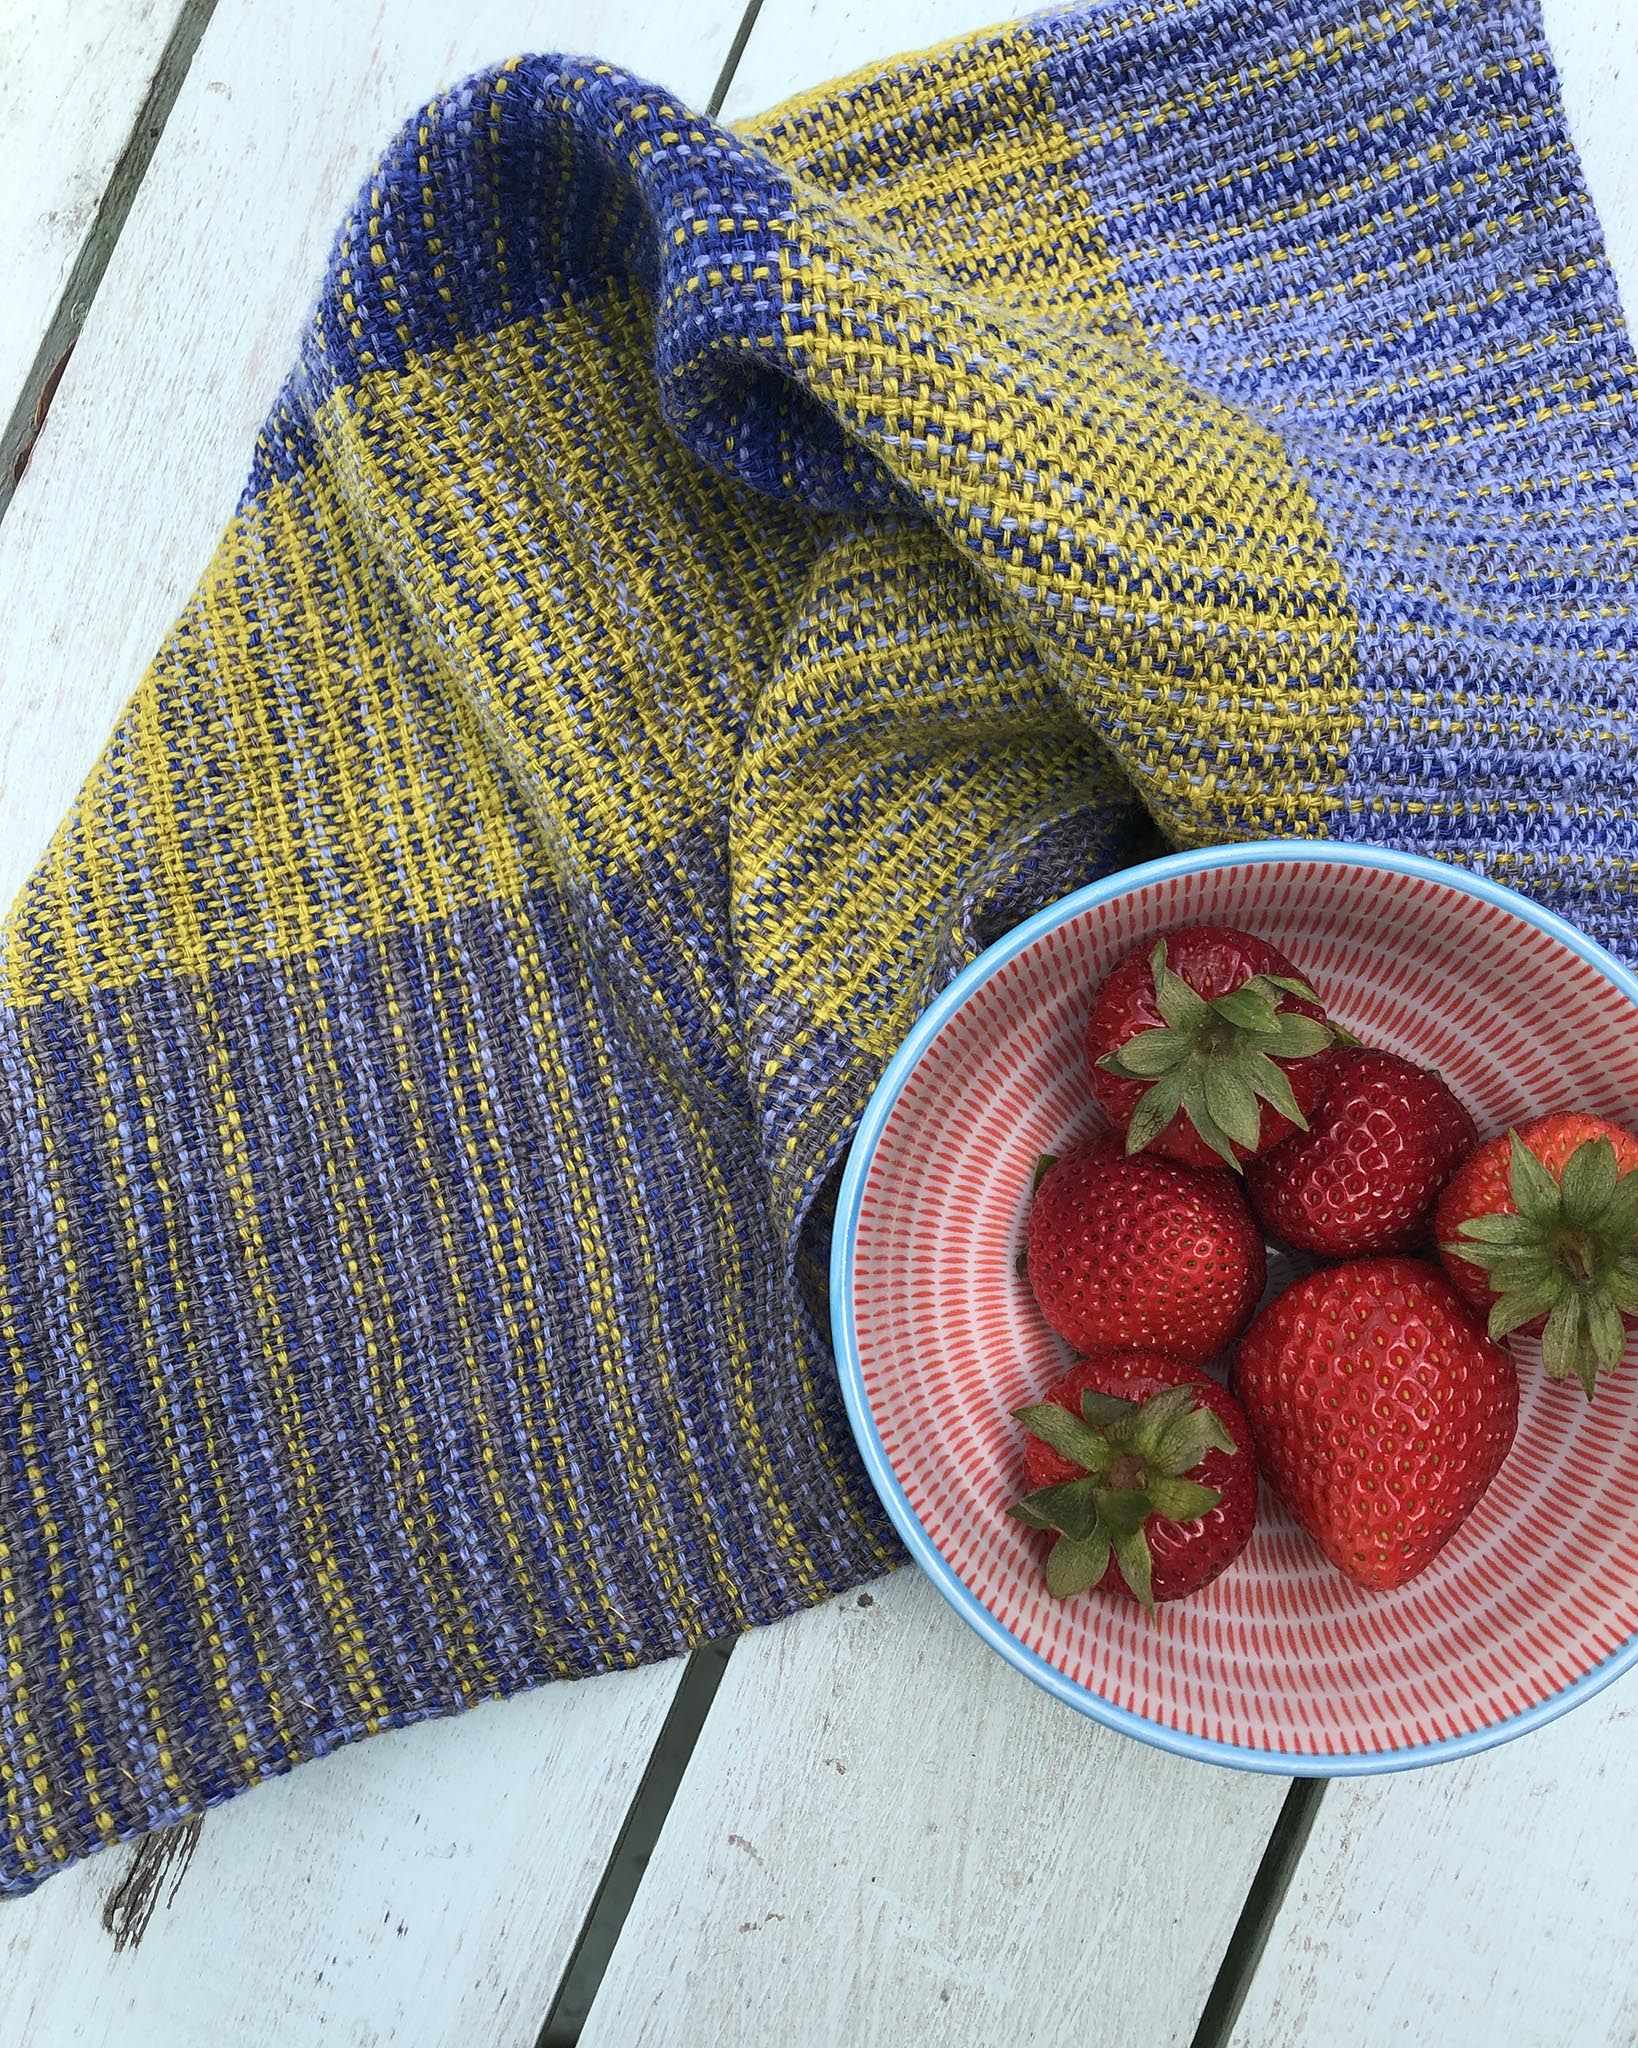 Free Weaving Pattern Pinstripe Napkins or Tea Towels